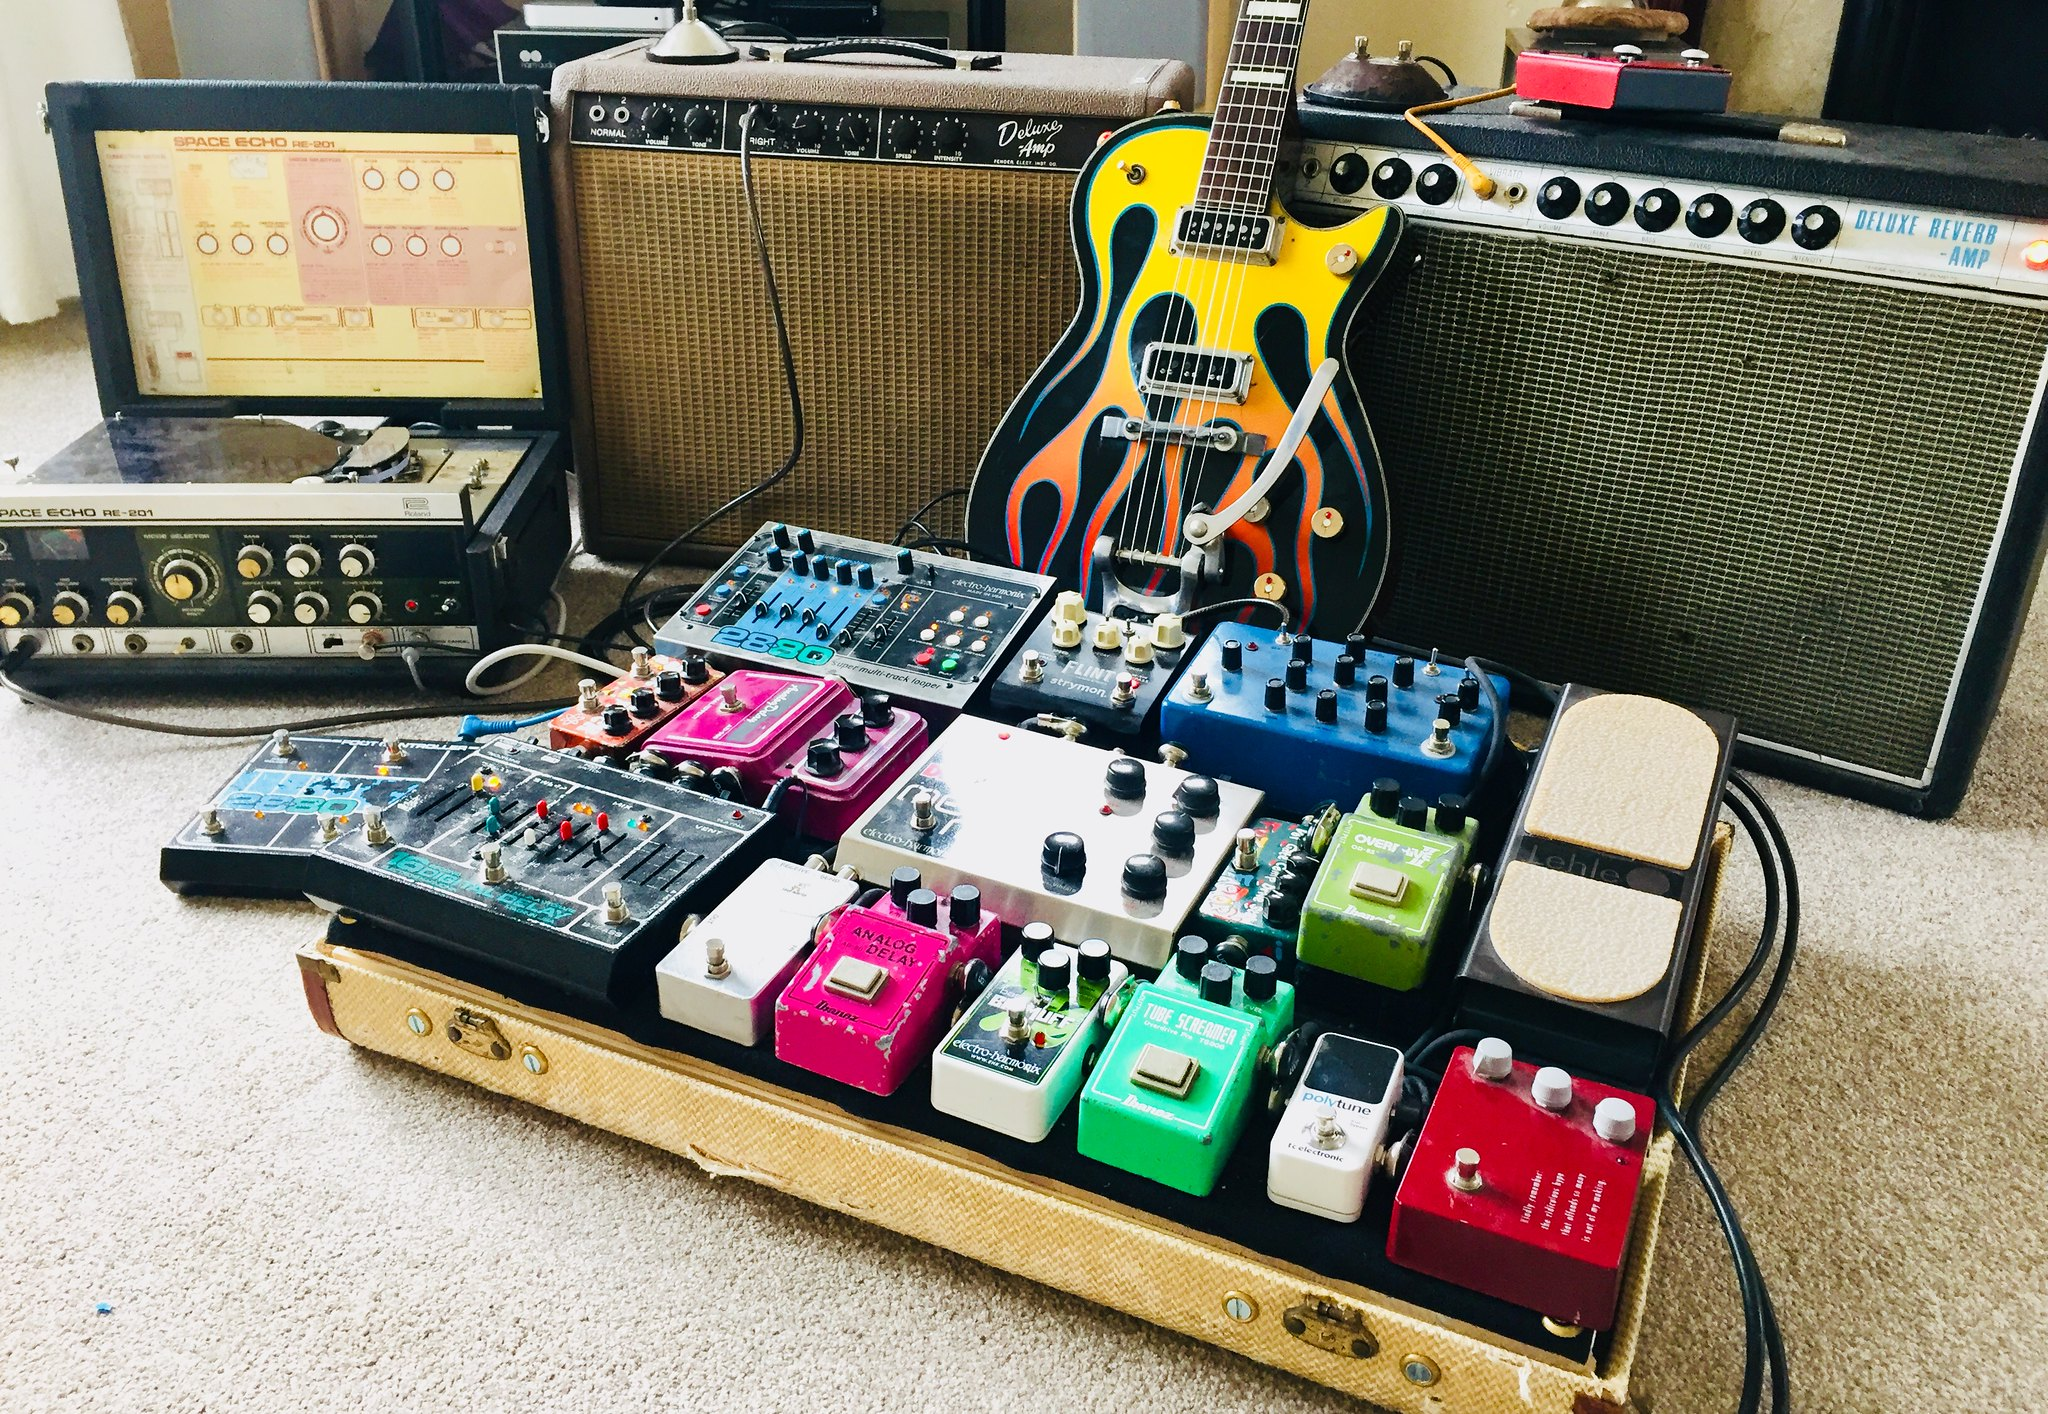 How Many Dirt (OD, Fuzz, Dist ) Pedals Live On Your Board